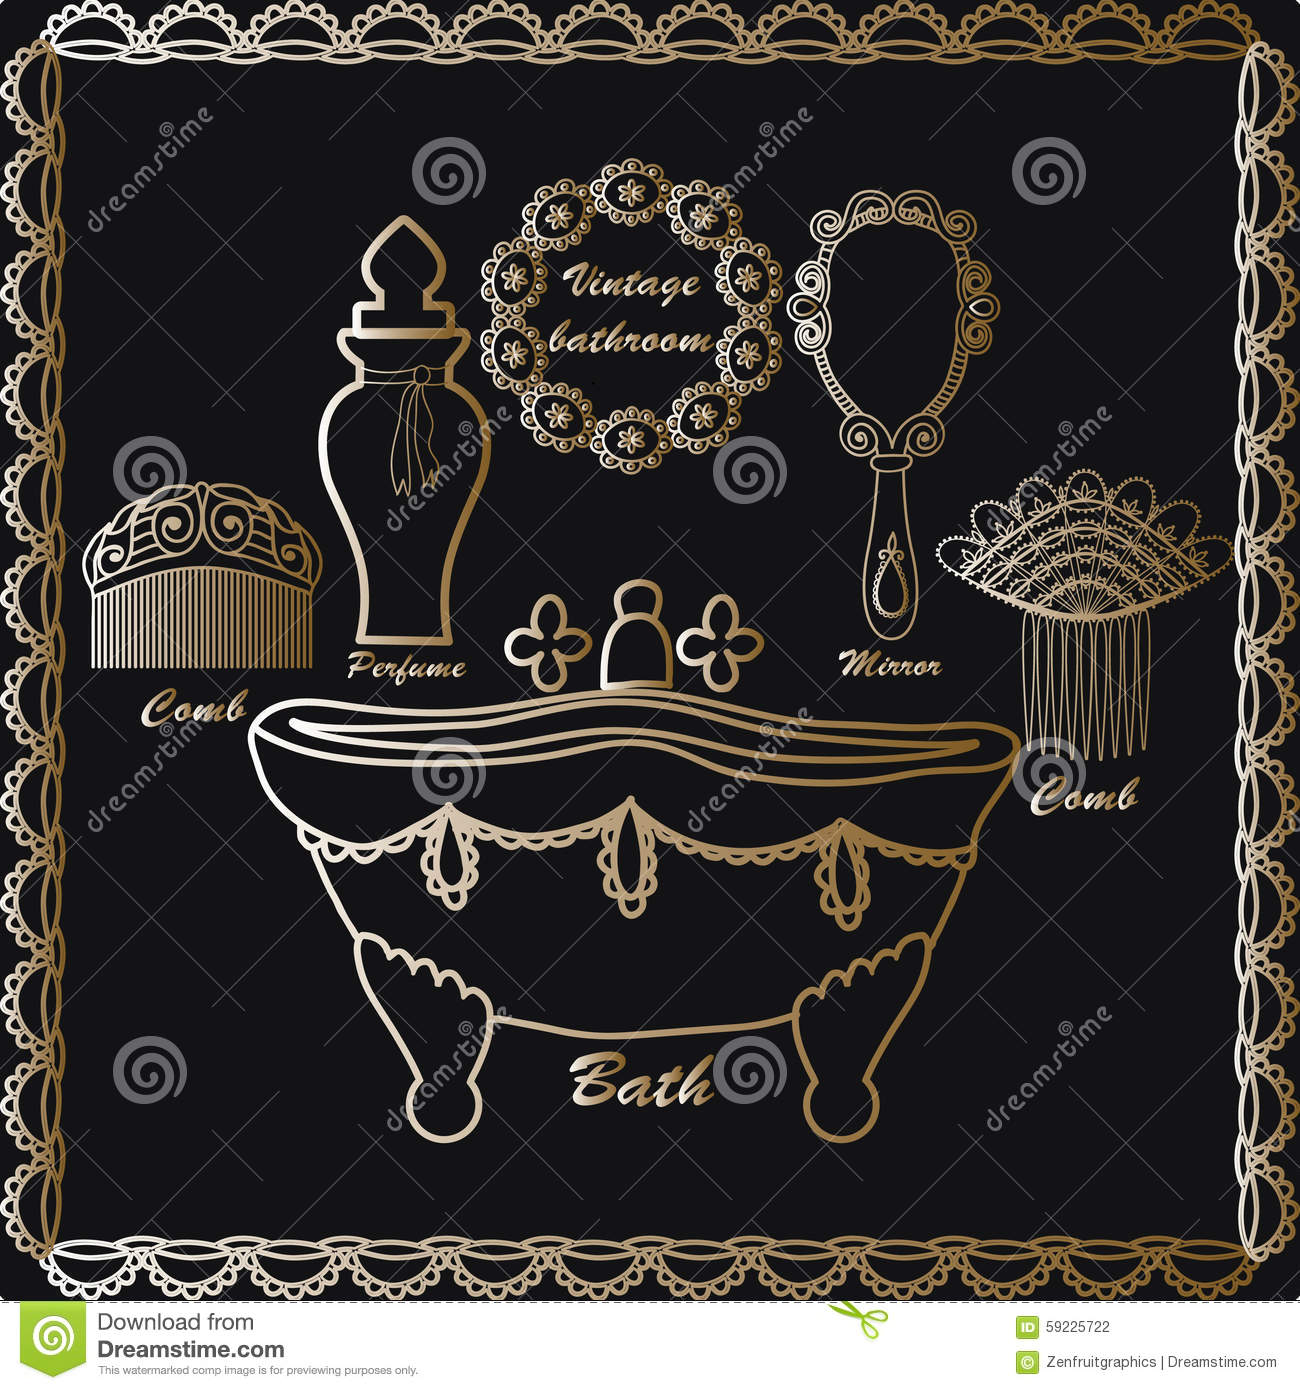 vintage bathroom icons set Retro poster Vintage elements: vintage  #85A922 1300 1390